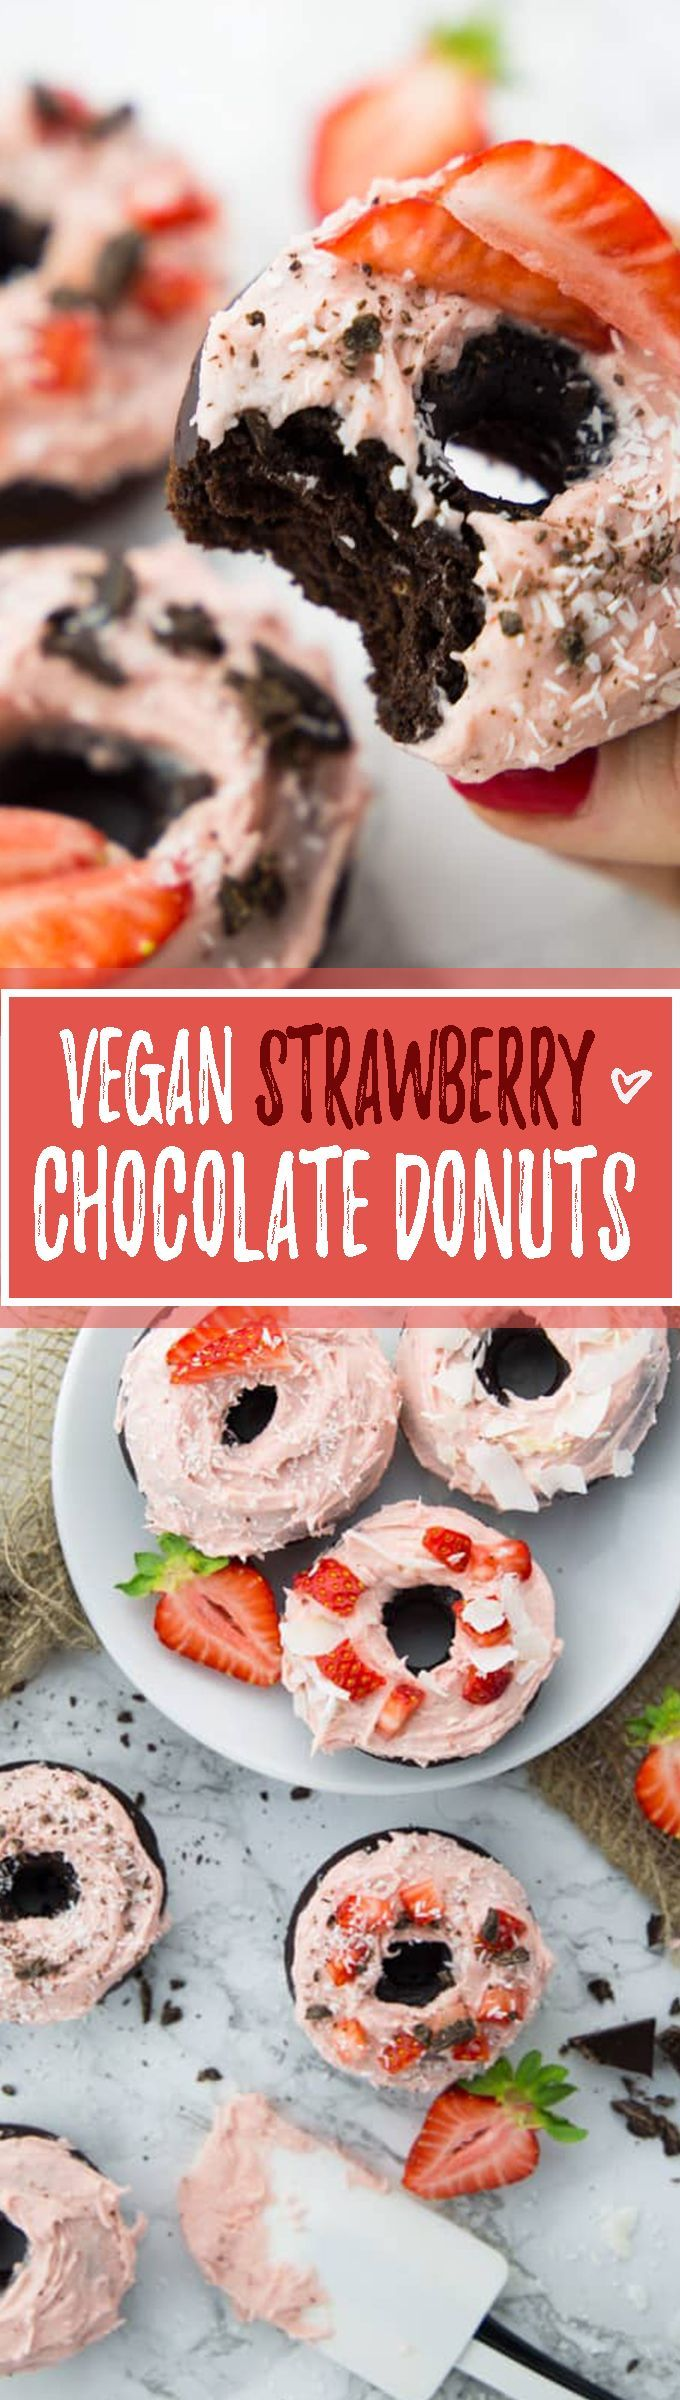 These vegan chocolate donuts are one of my favorites! They're super chocolatey with a creamy strawberry frosting topped with coconut flakes. Vegan donuts at their best - one of my favorite vegan desserts!